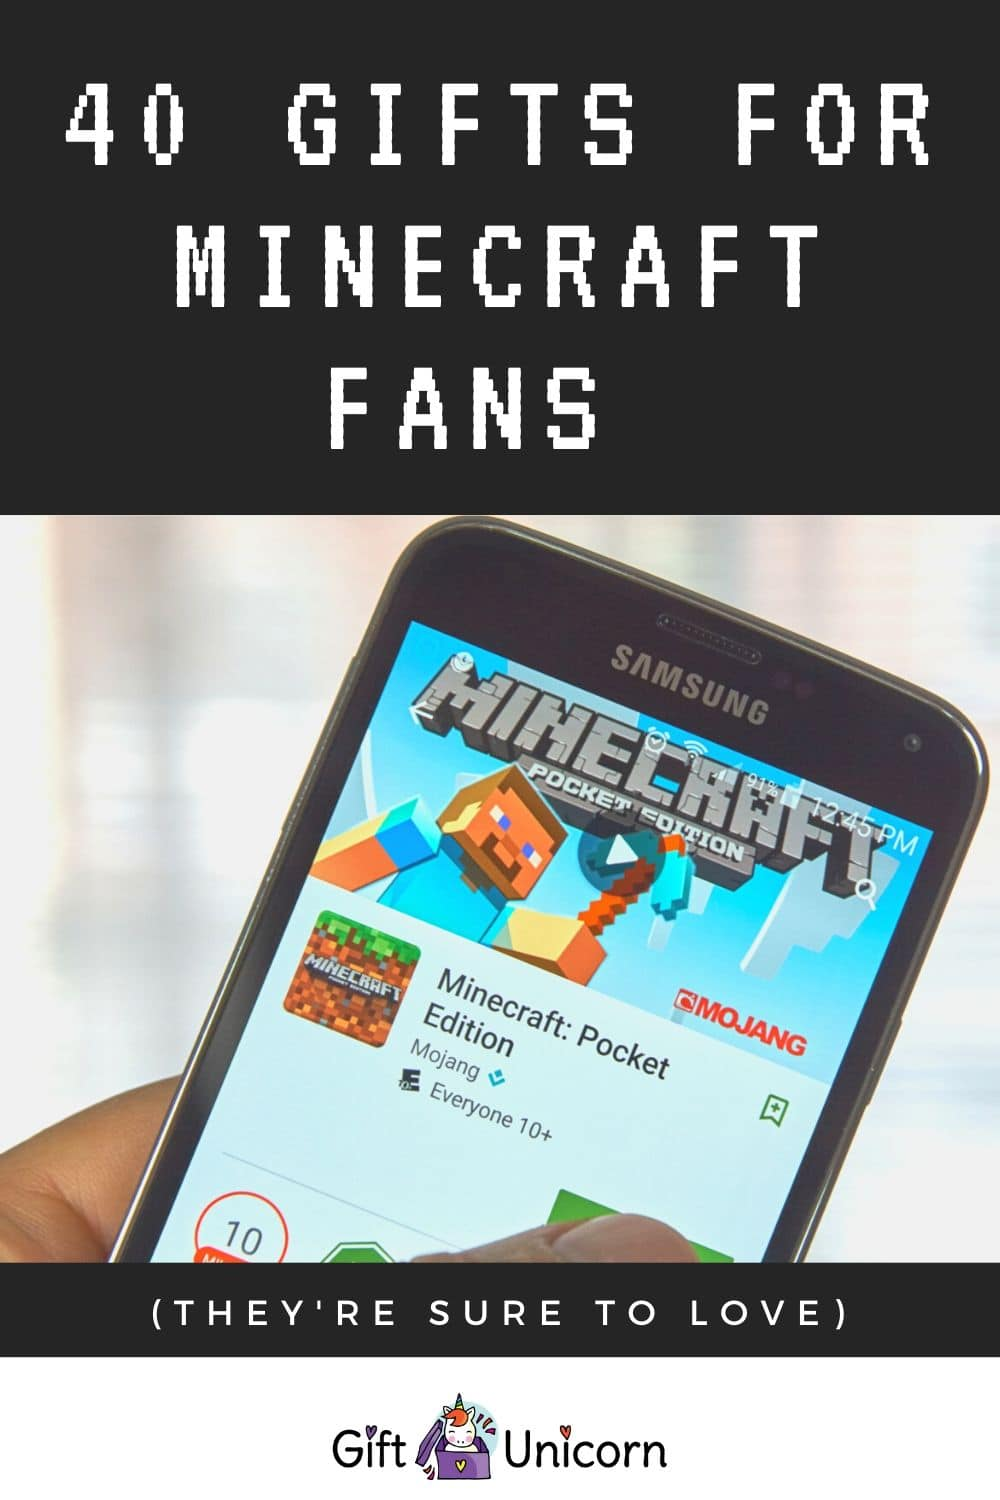 40 gifts for minecraft fans pinterest pin image